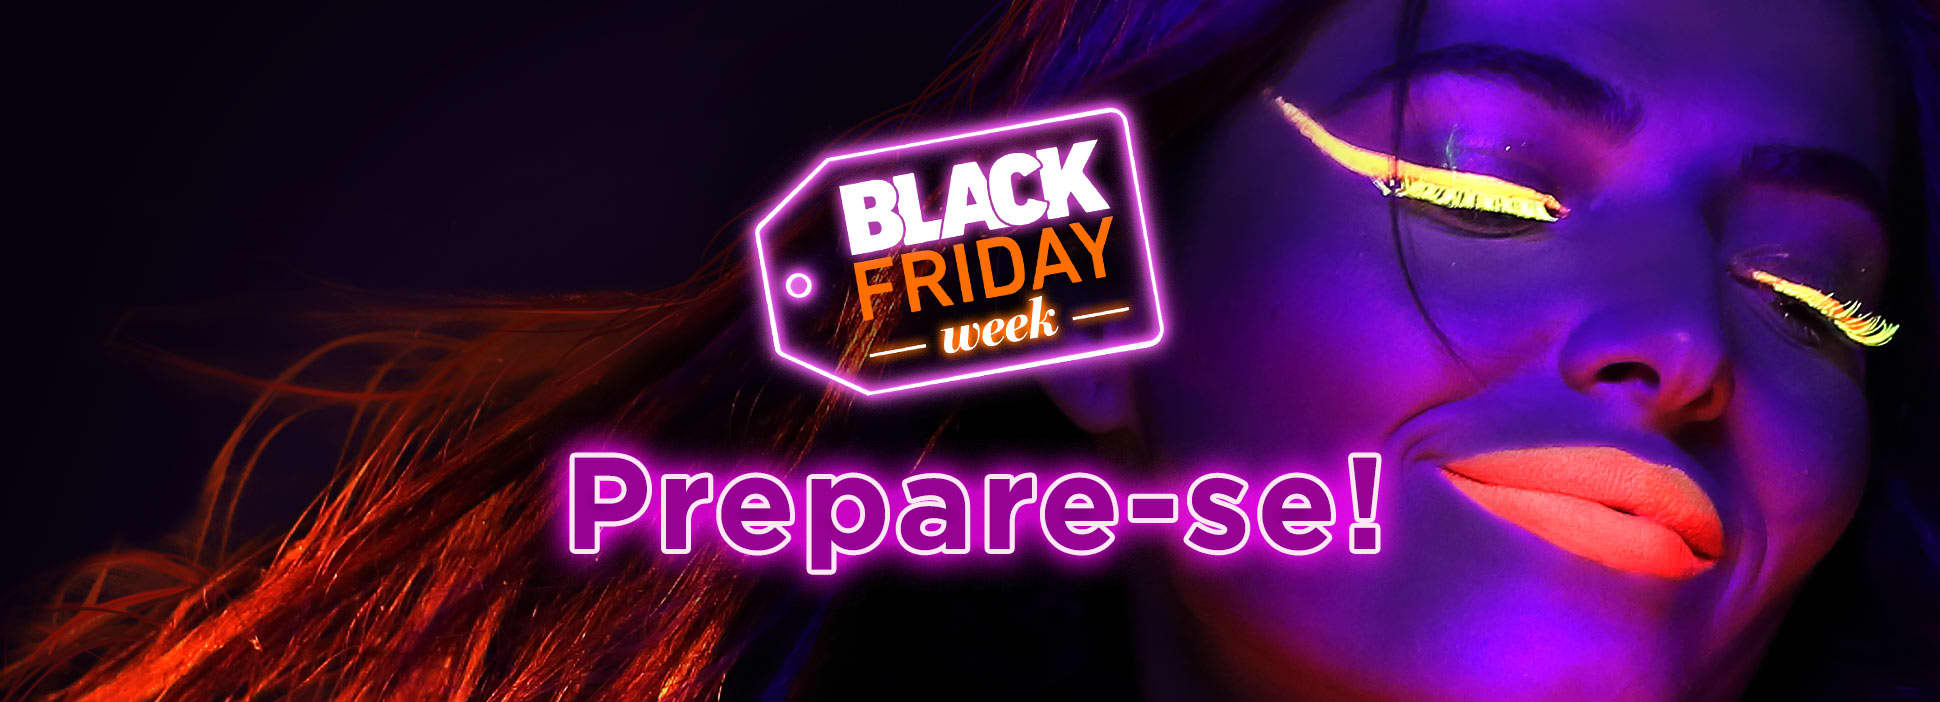 Black Friday: Prepare-se